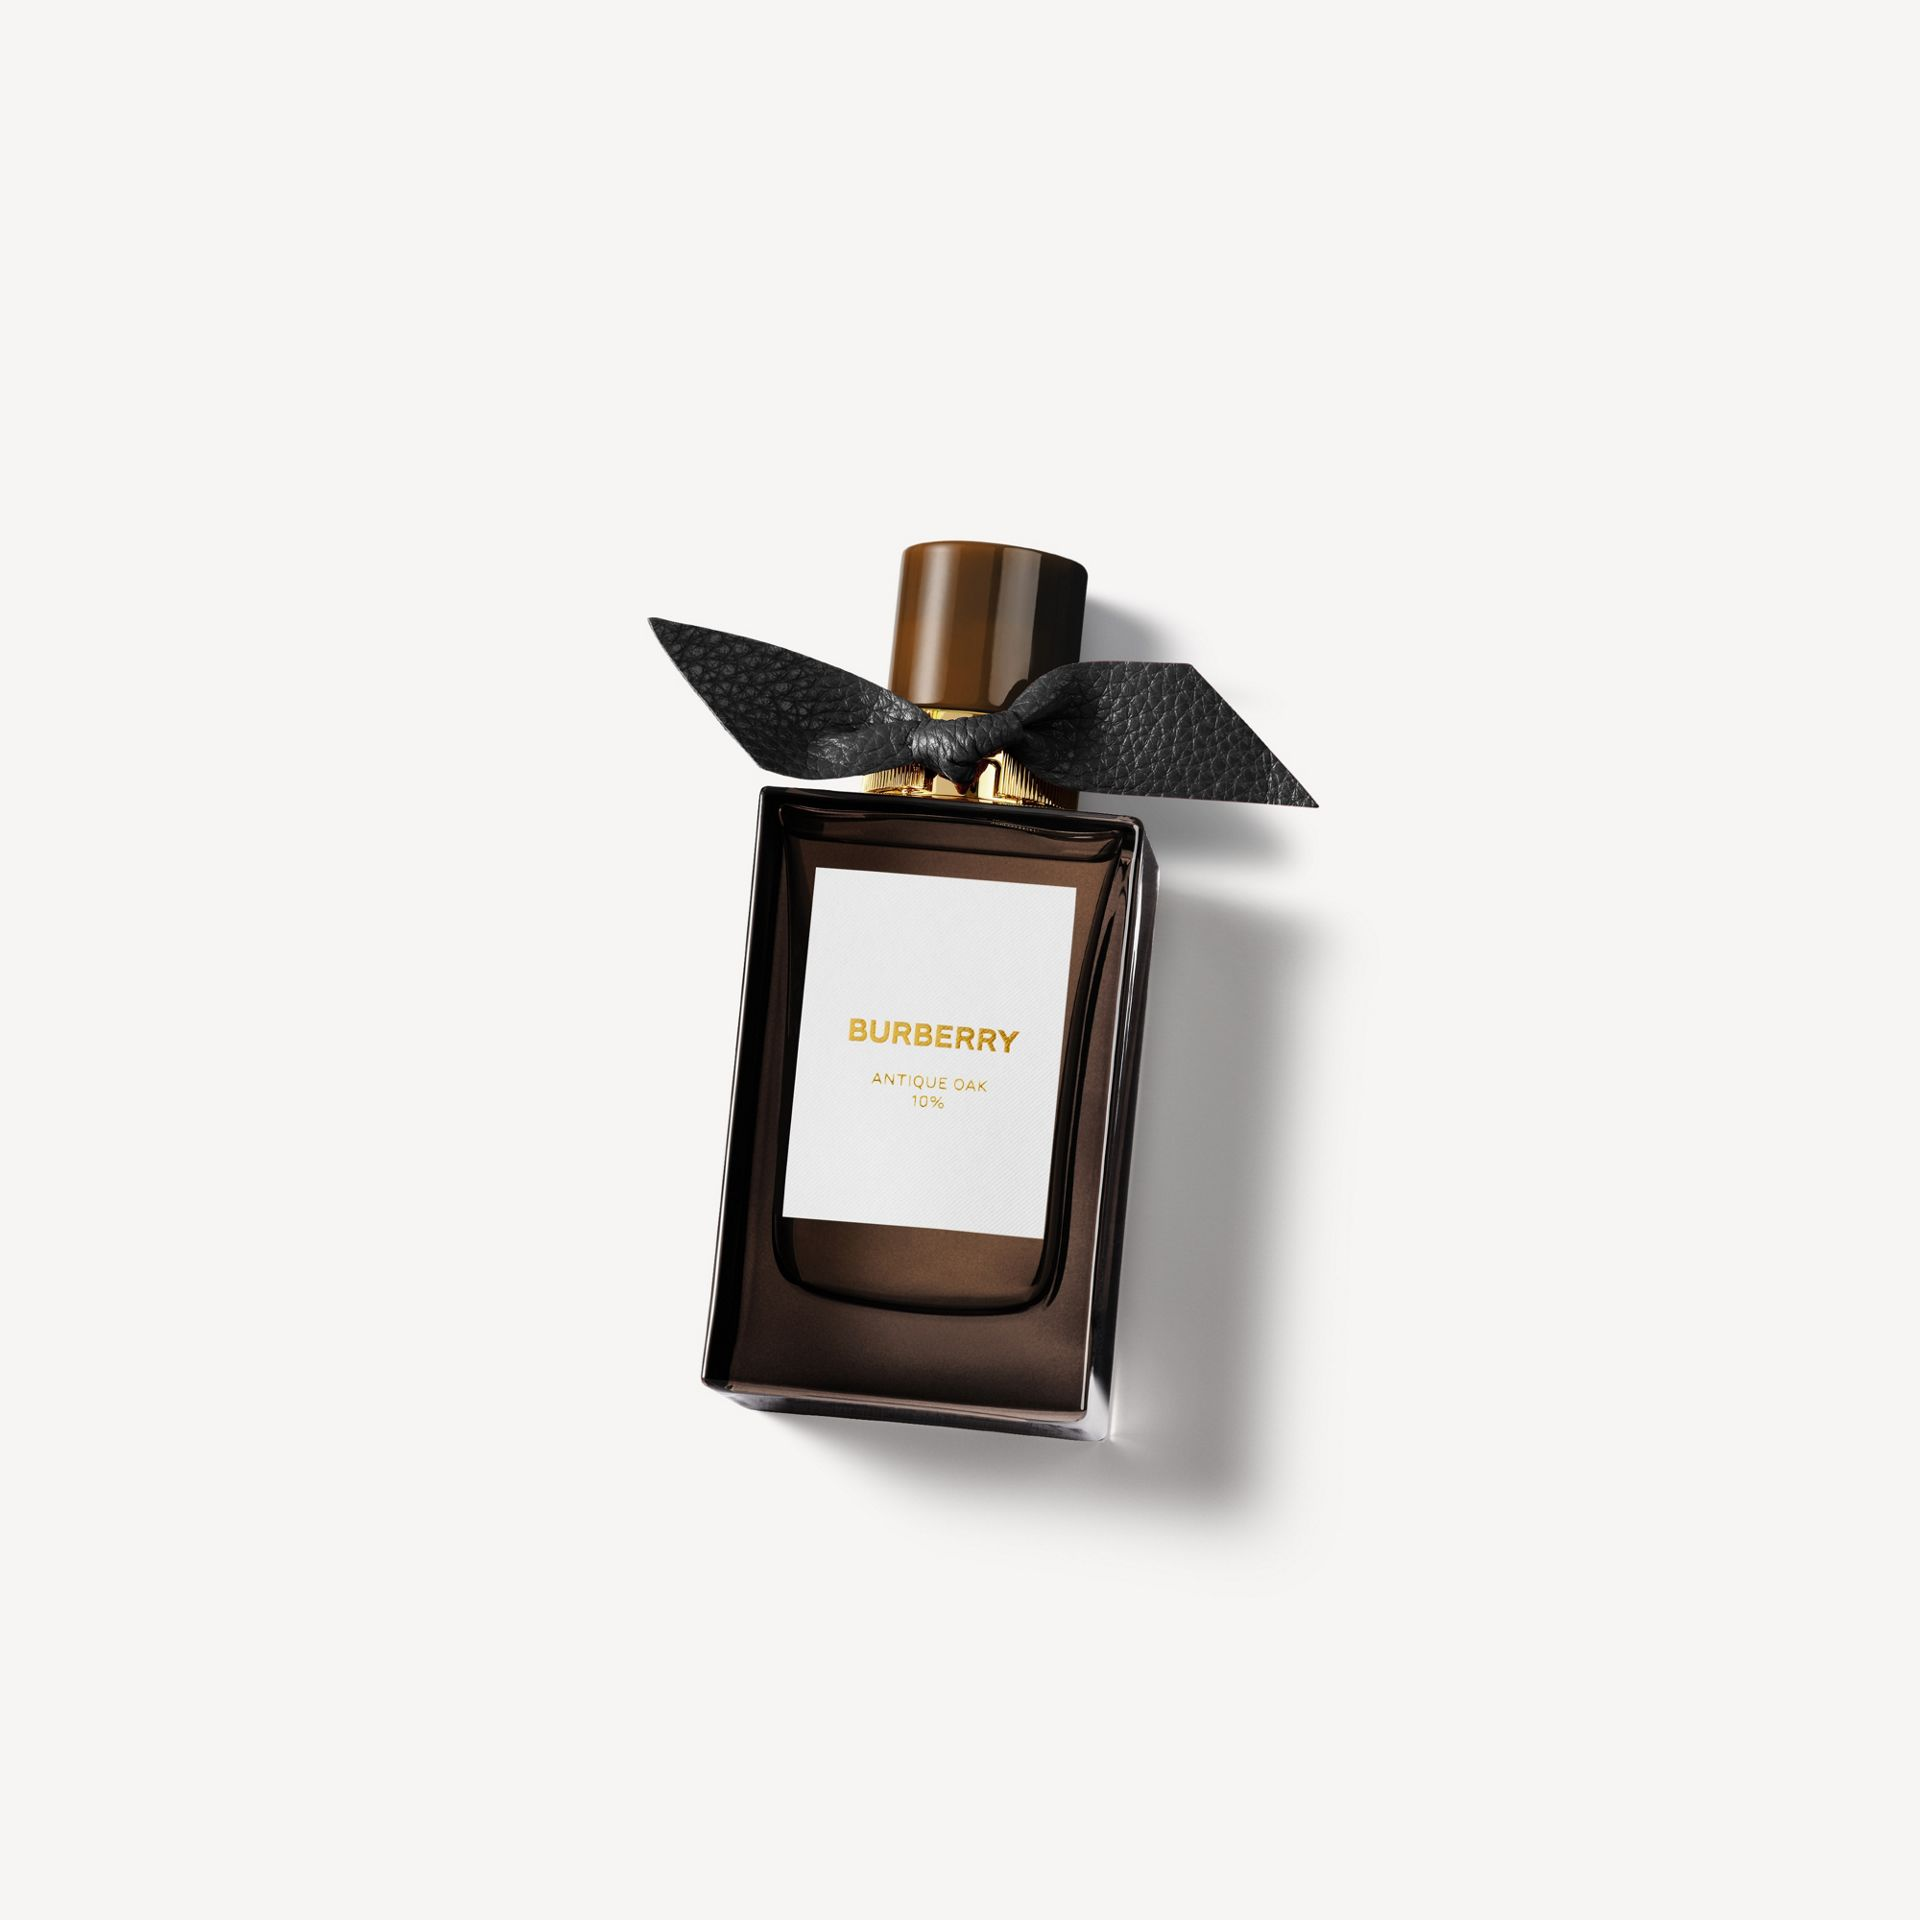 Burberry Signatures Antique Oak Eau de Parfum 100ml | Burberry - gallery image 0